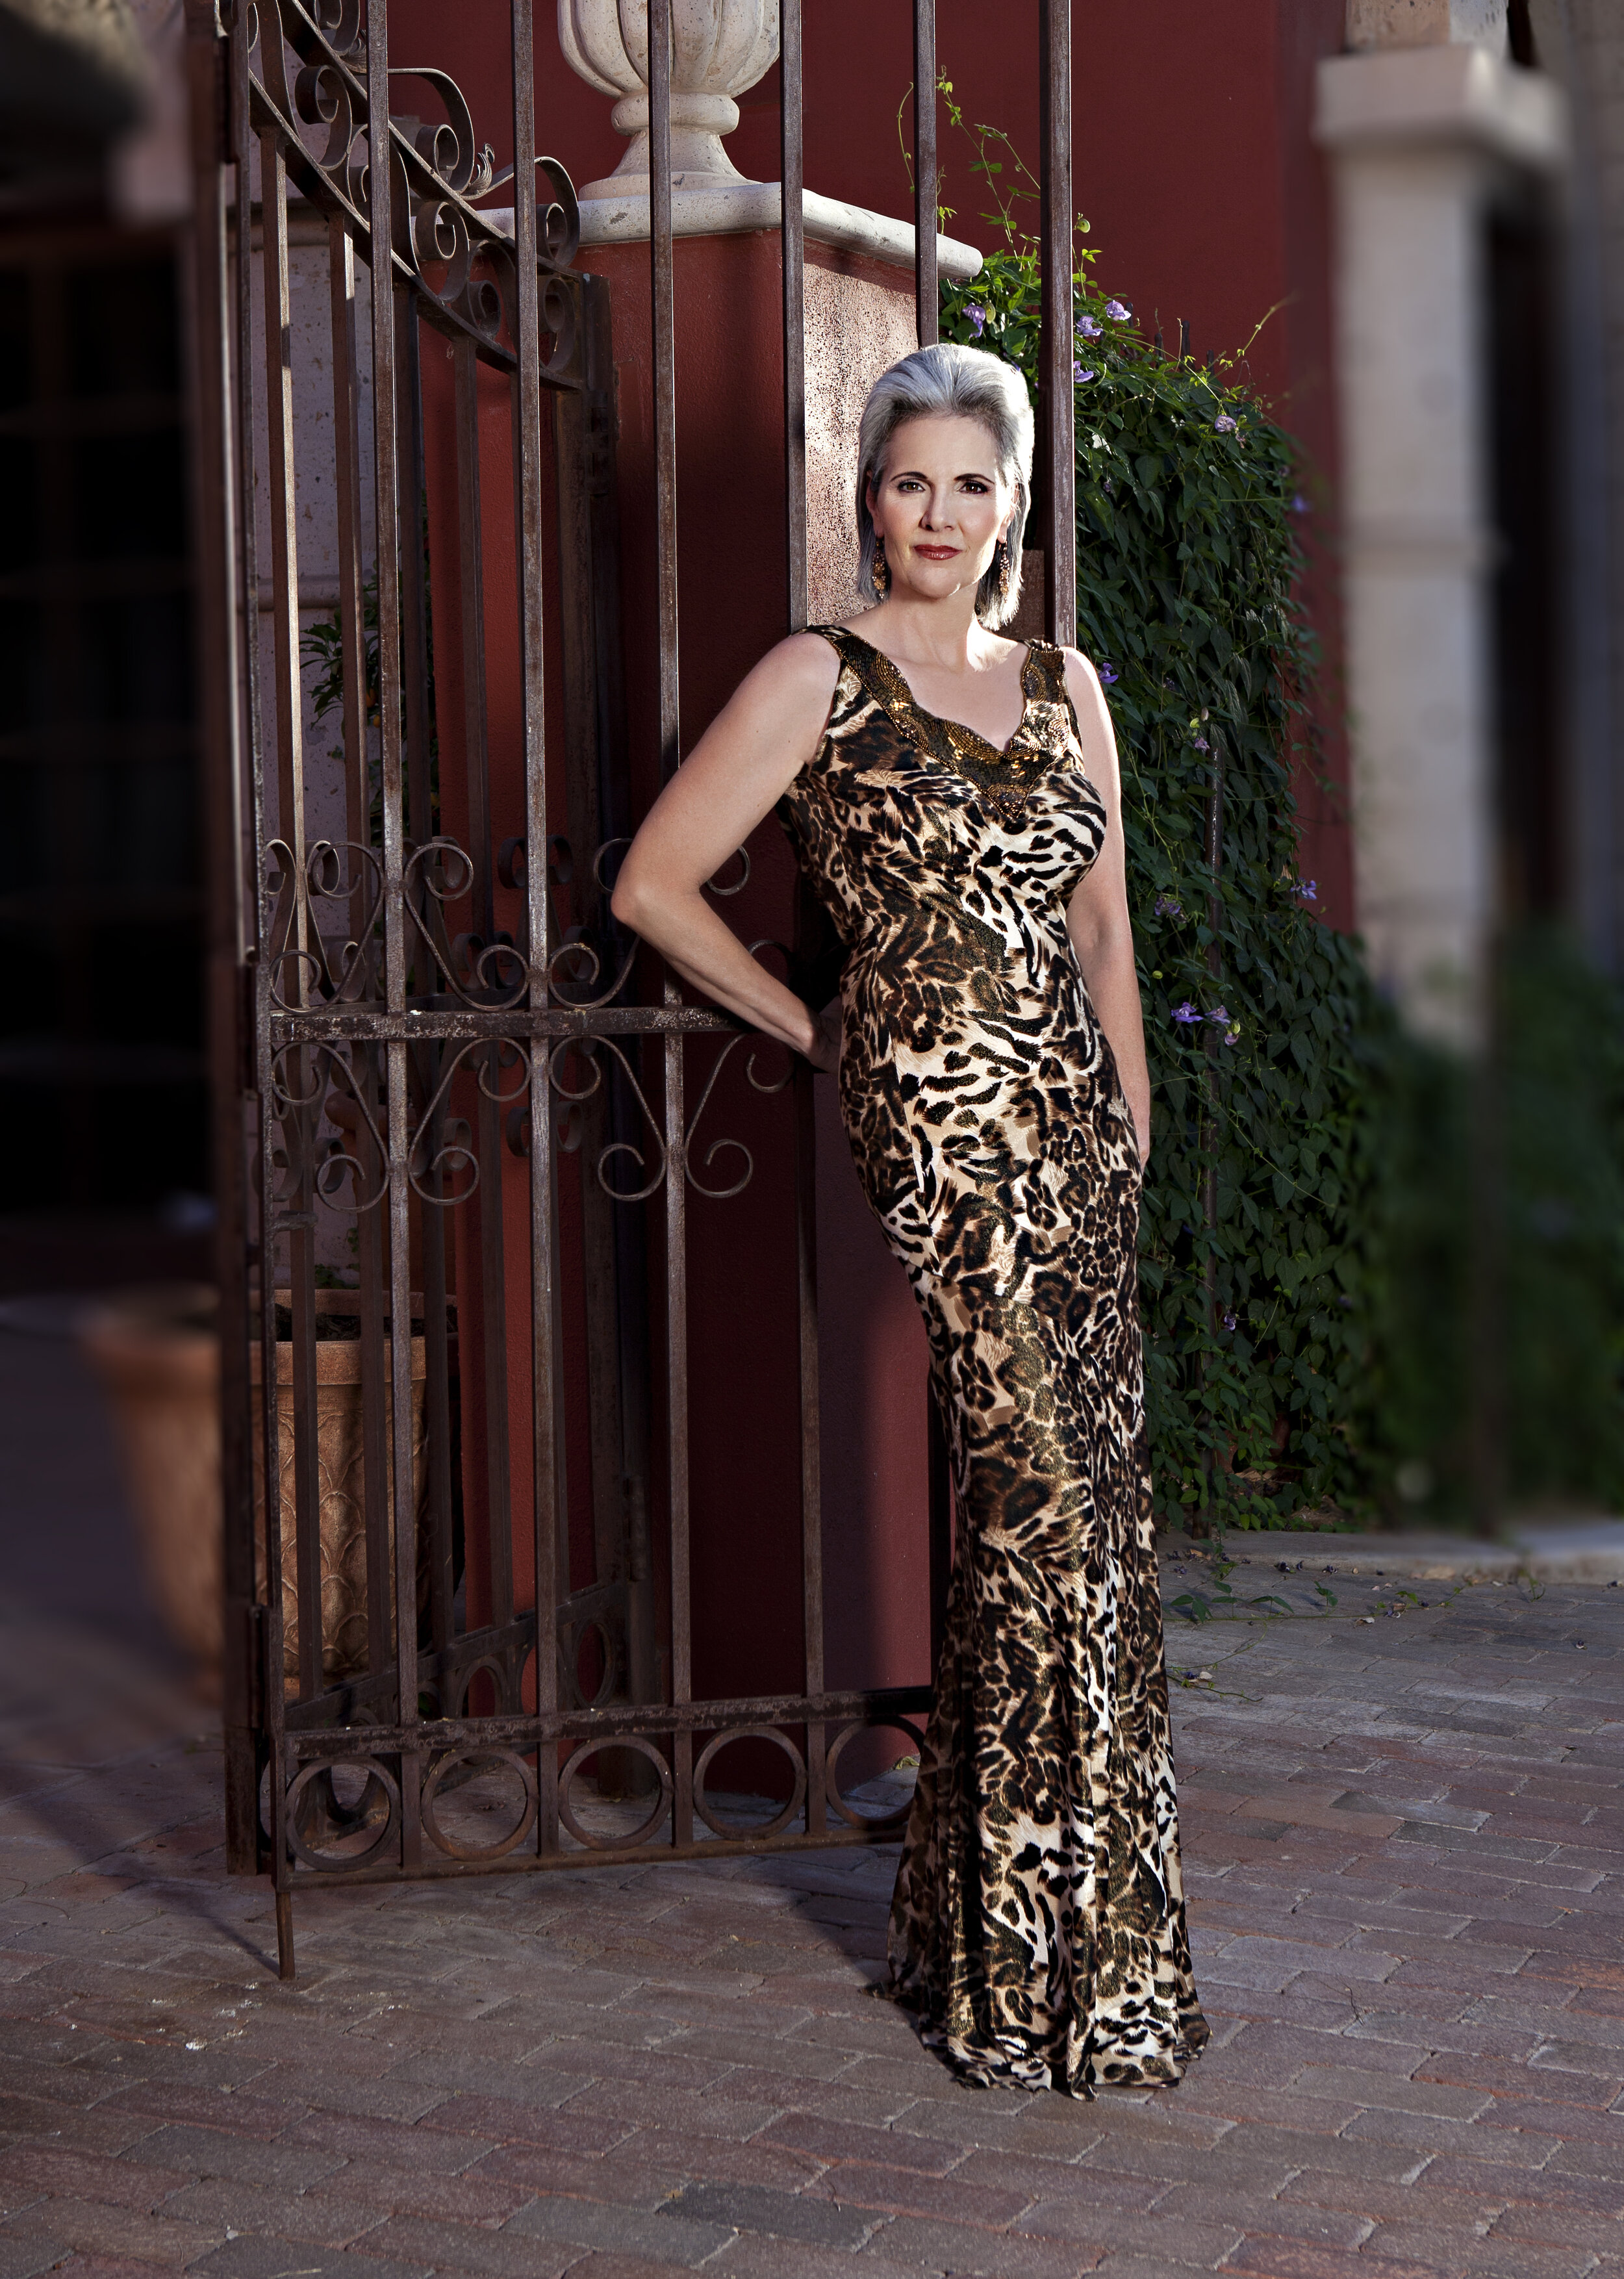 Brown and gold casual maxi dress with square neckline custom made by Alis Fashion Design for mother of the bride.jpg